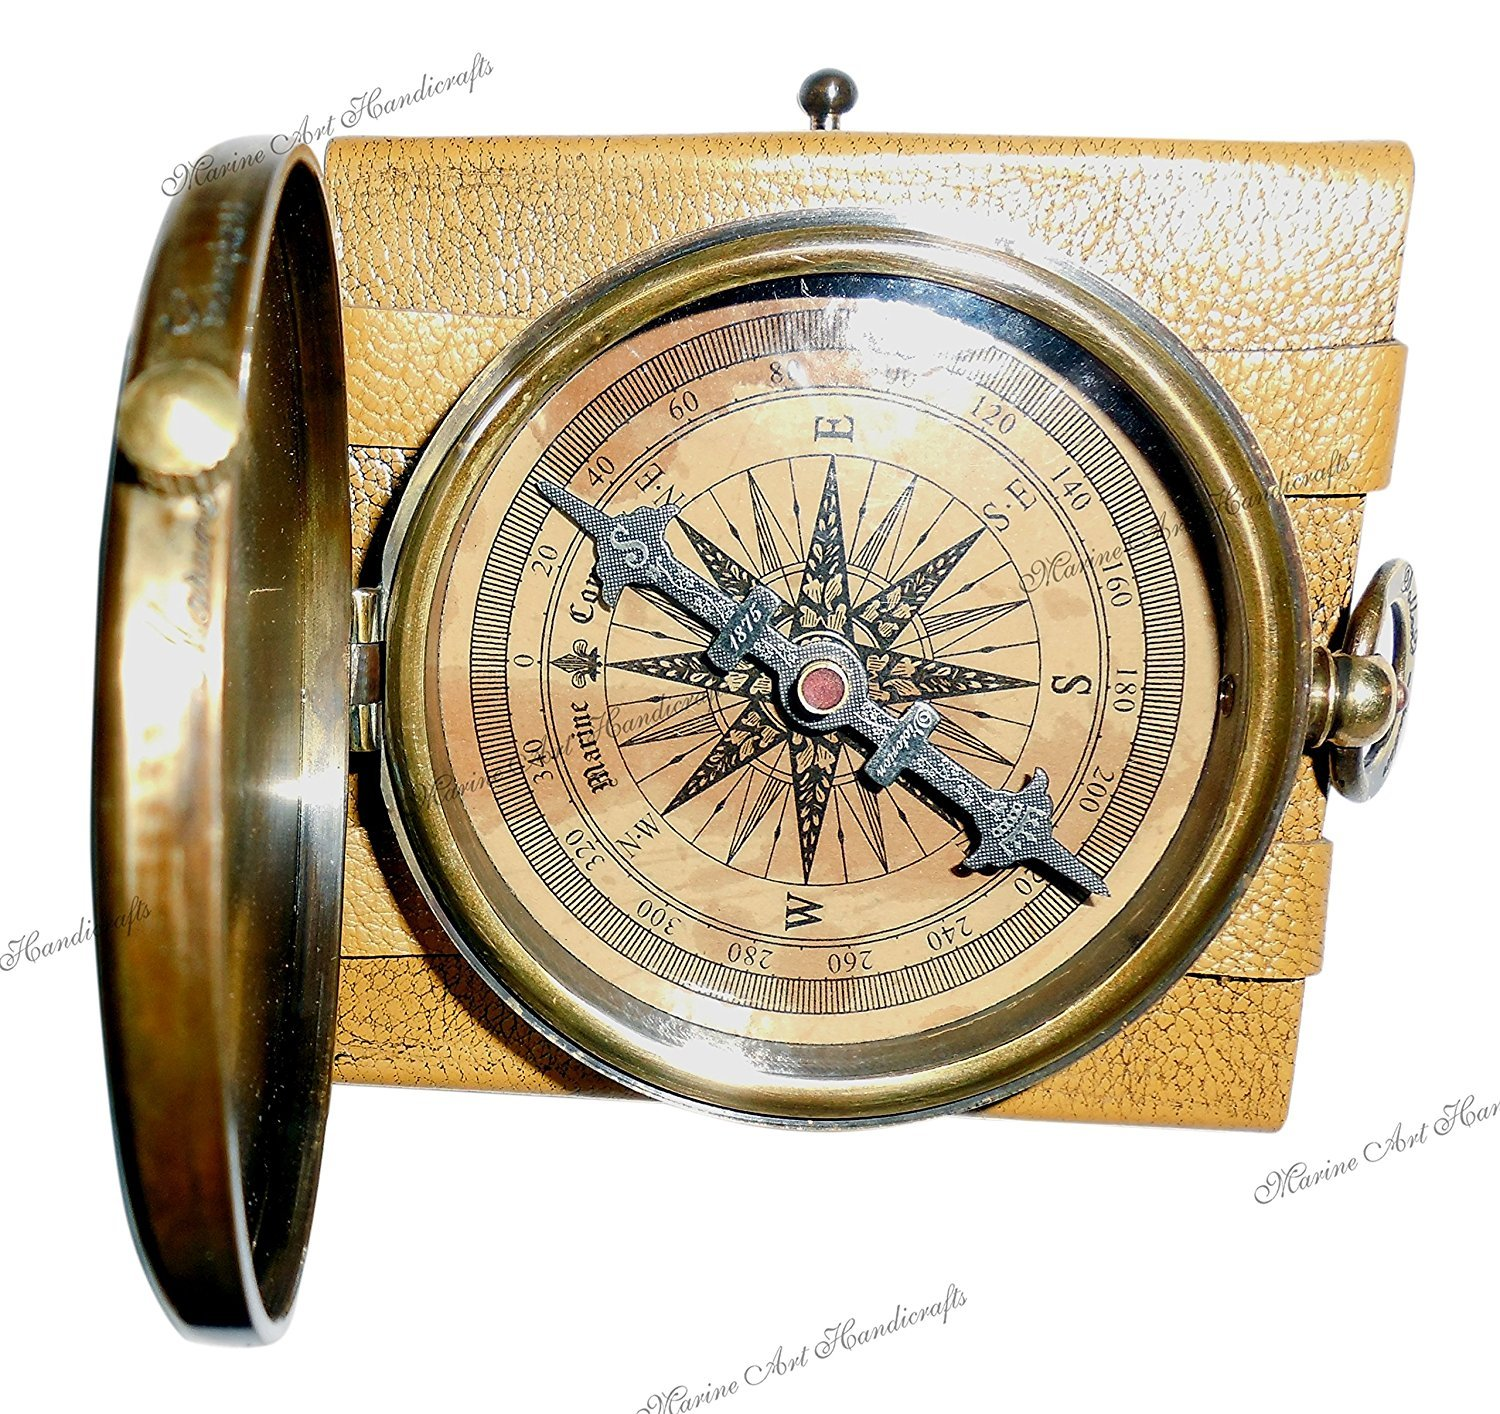 ''Robert Frost Poem'' Best Christmas Gift Engraved Brass Compass with Embossed Needle & Leather Case. C-3240 NAUTICALMART INC